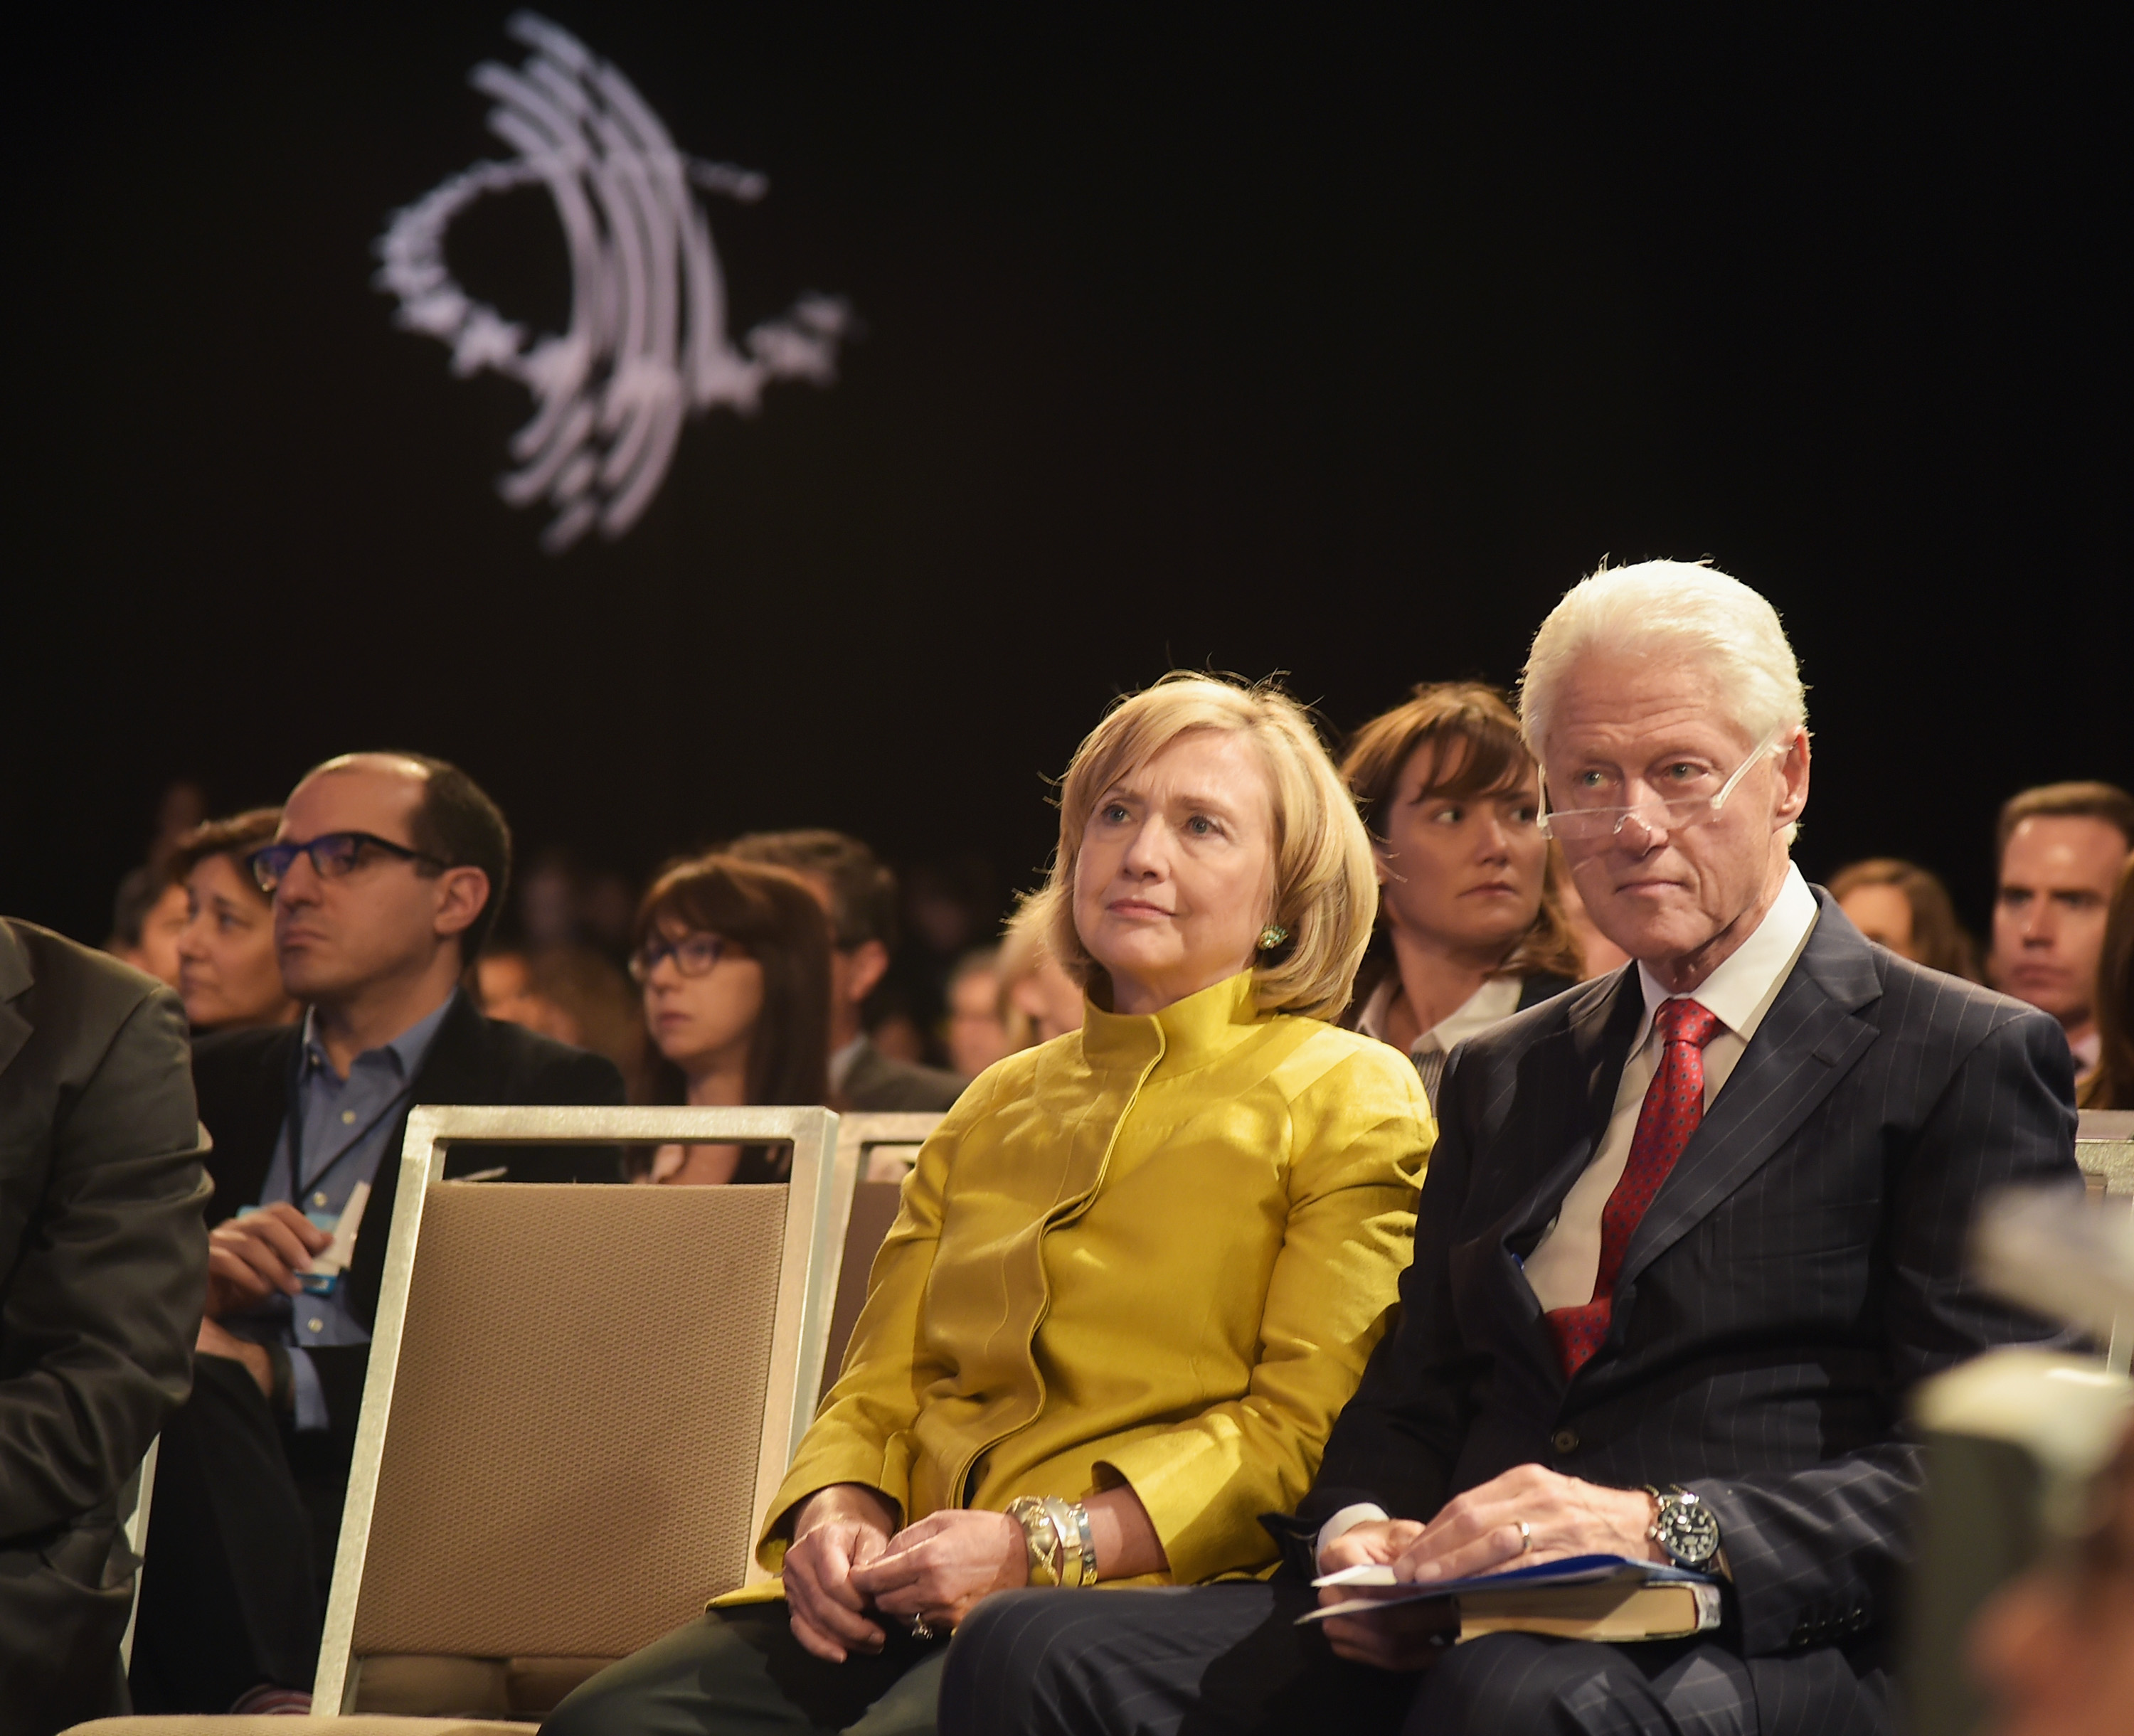 Former US Secretary of State Hillary Clinton and husband former US President Bill Clinton attend an event at the Clinton Global Initiative's meeting in New York in September.